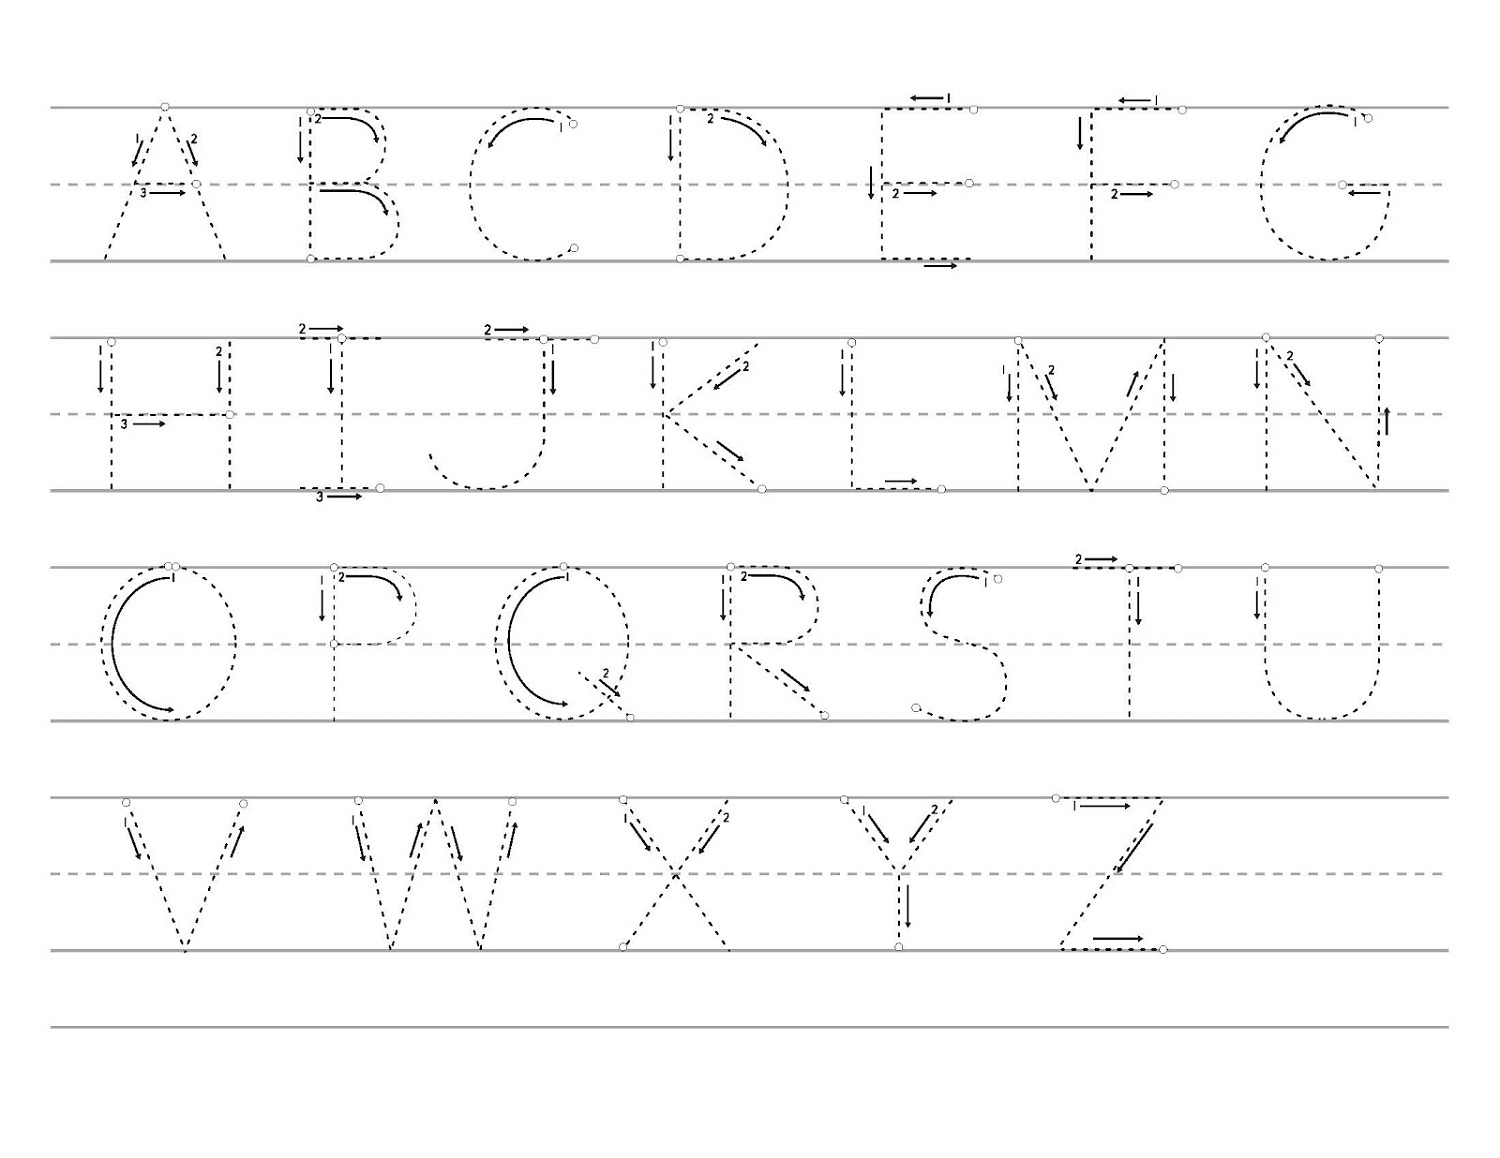 Worksheet ~ Blank Tracing Sheets Free Letter For Kids